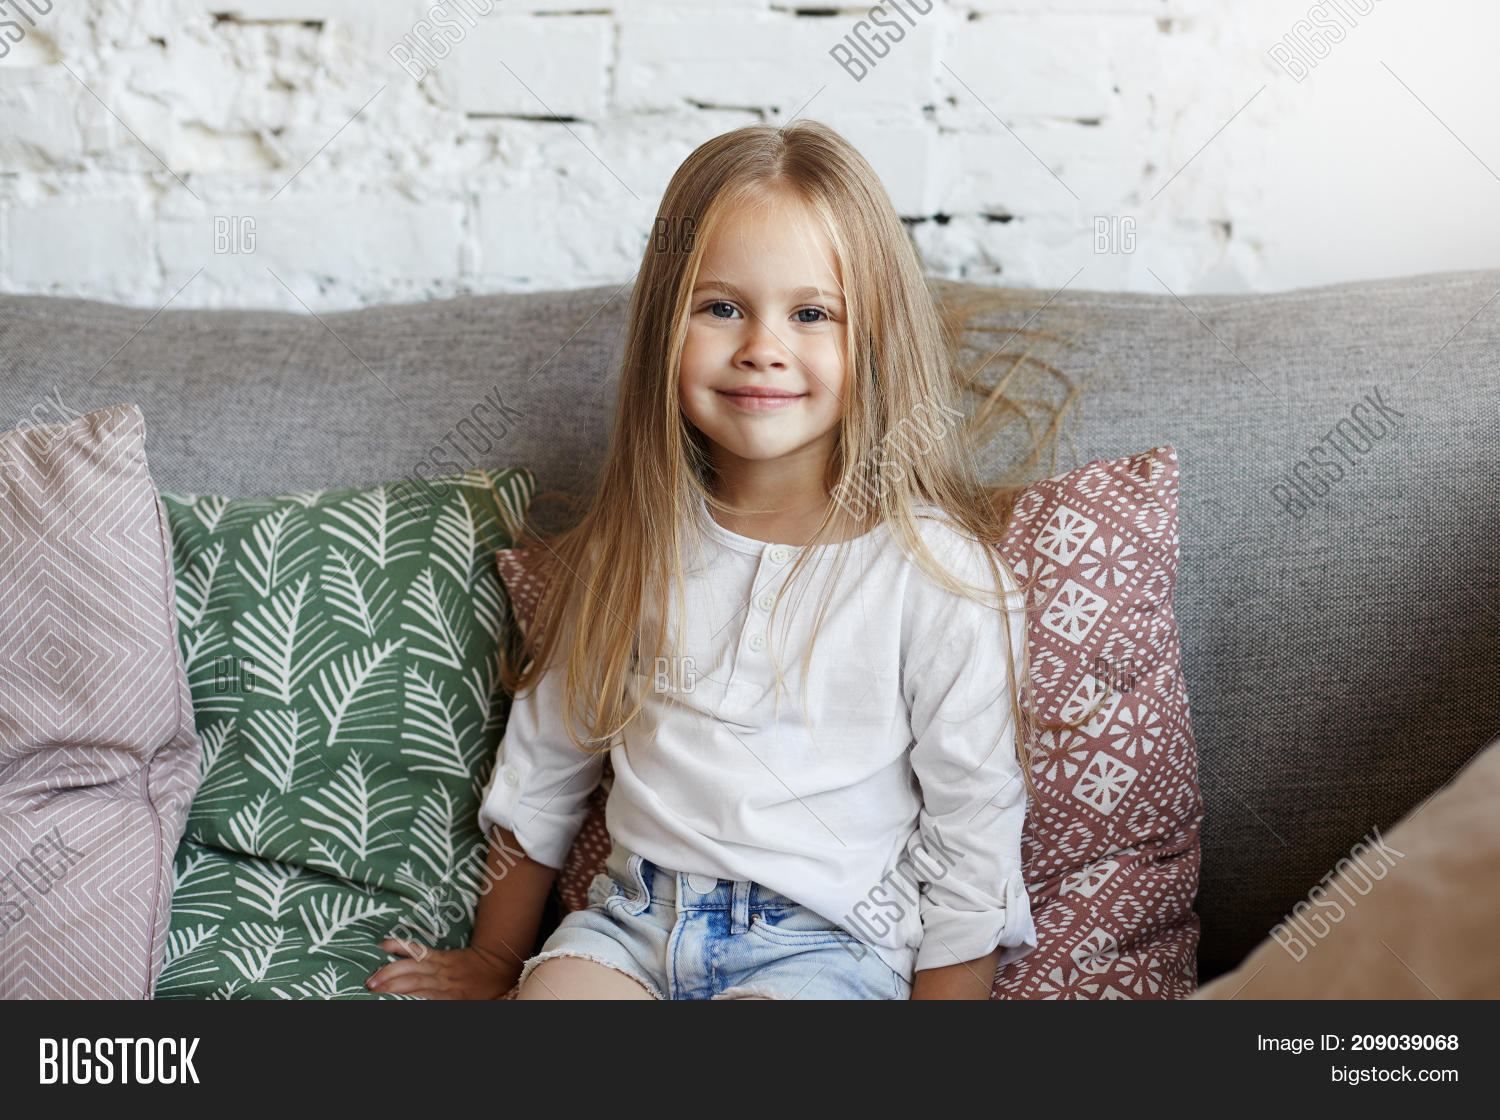 Adorable 5 Year Old Image Amp Photo Free Trial